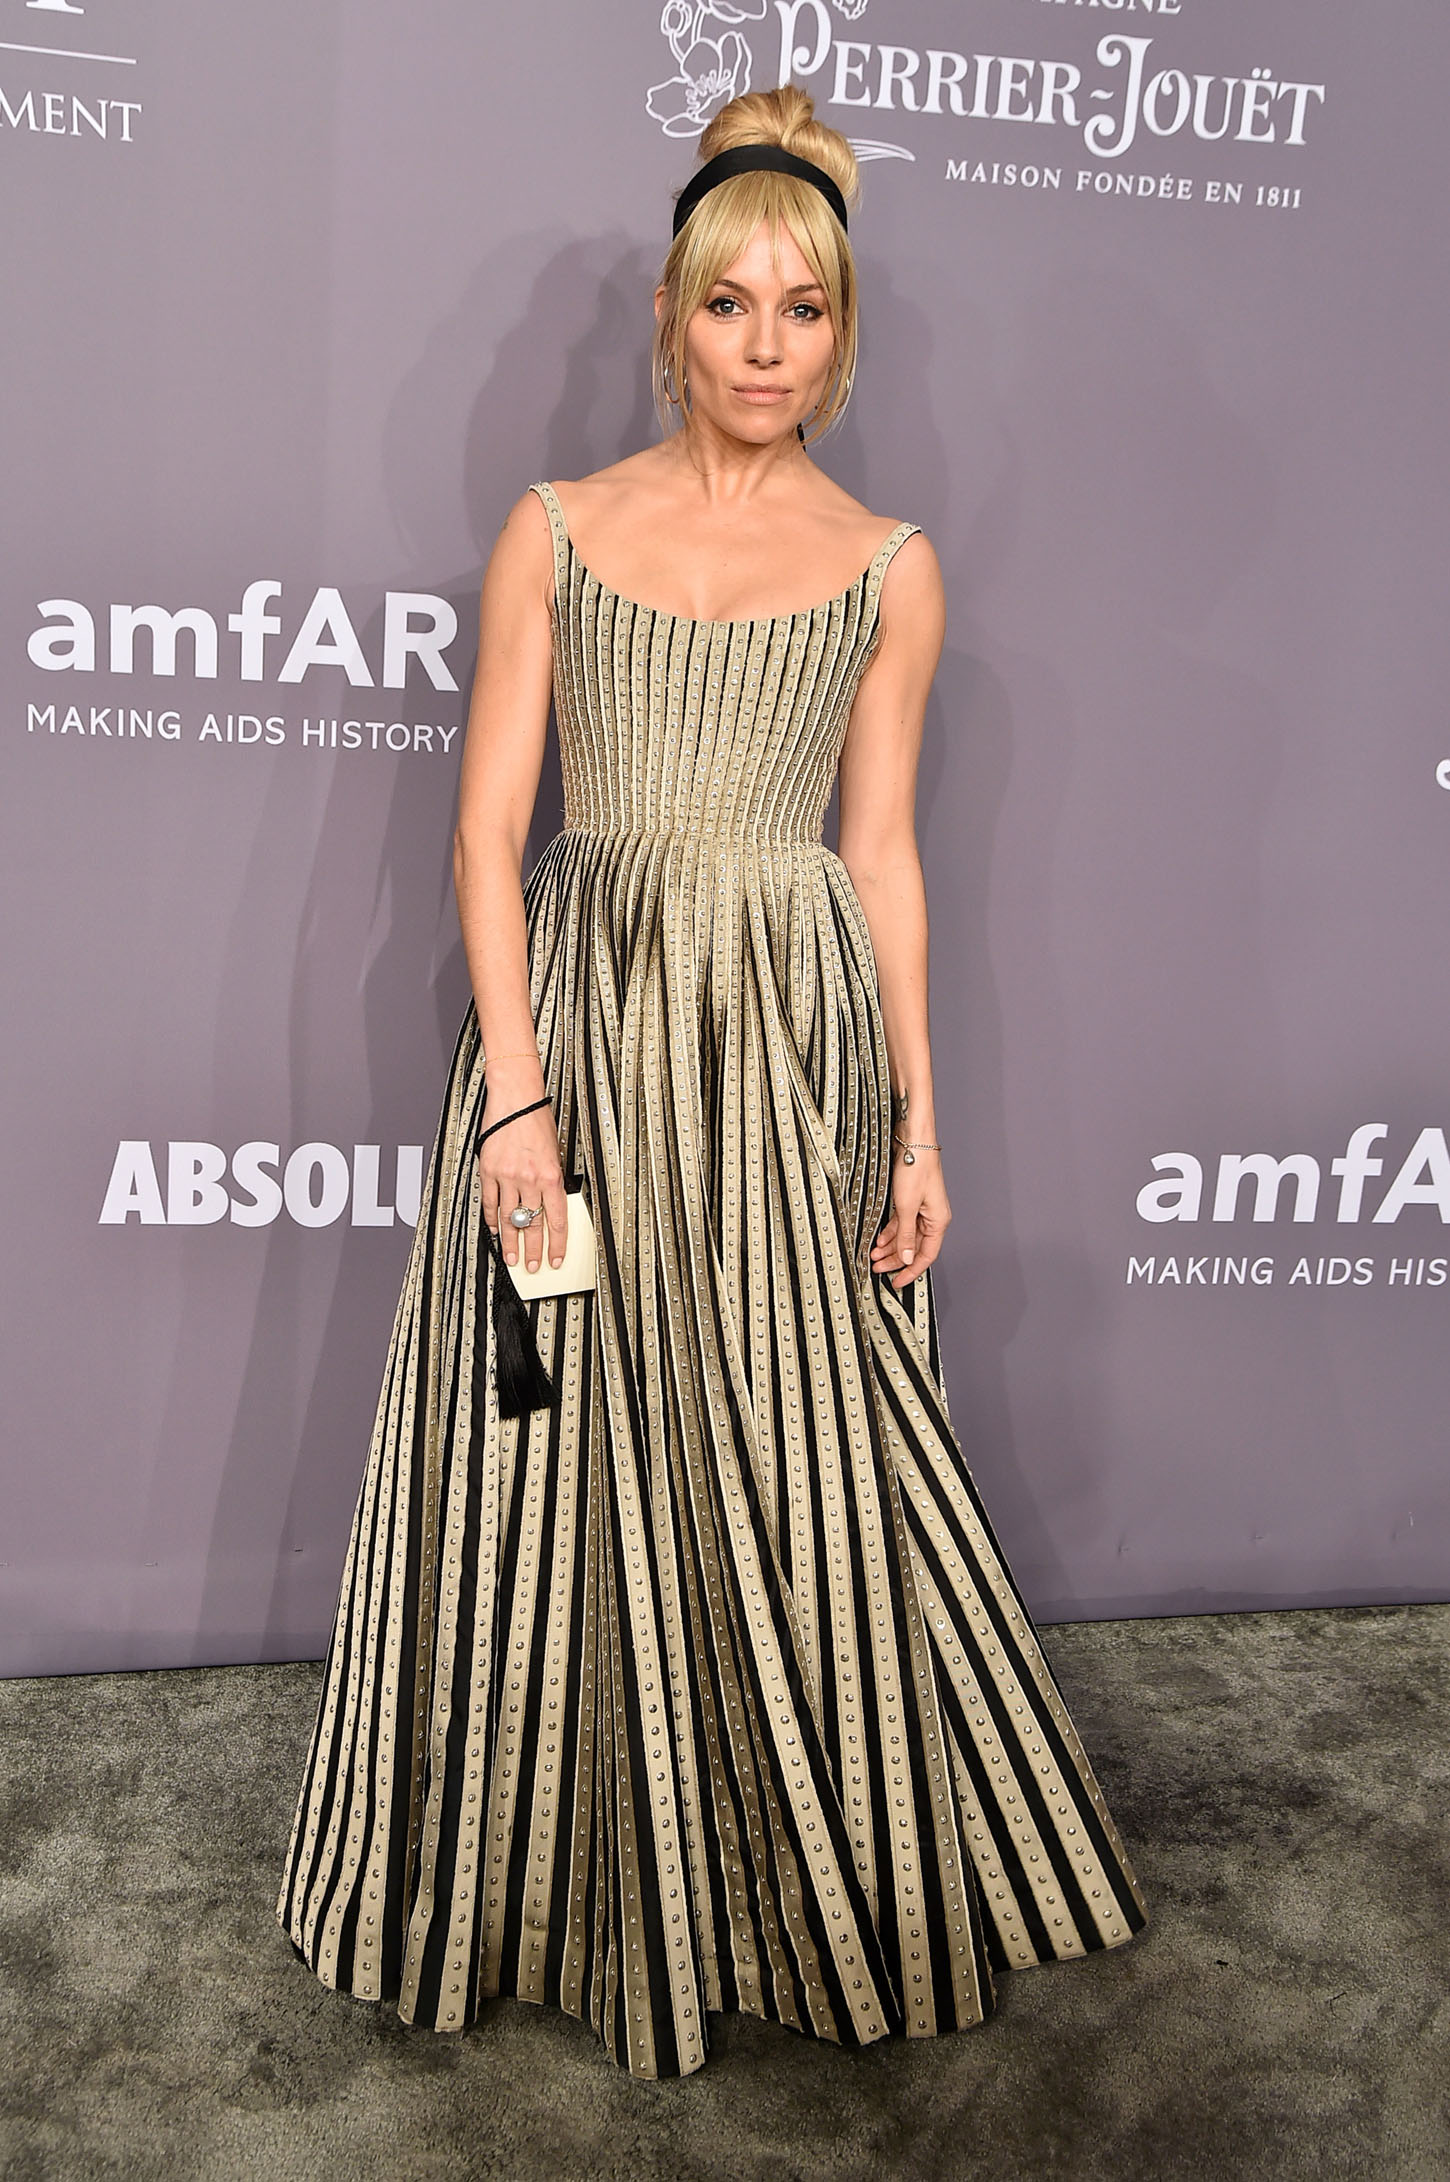 NEW YORK, NY - FEBRUARY 07:  Sienna Miller attends the 2018 amfAR Gala New York at Cipriani Wall Street on February 7, 2018 in New York City.  (Photo by Theo Wargo/Getty Images)